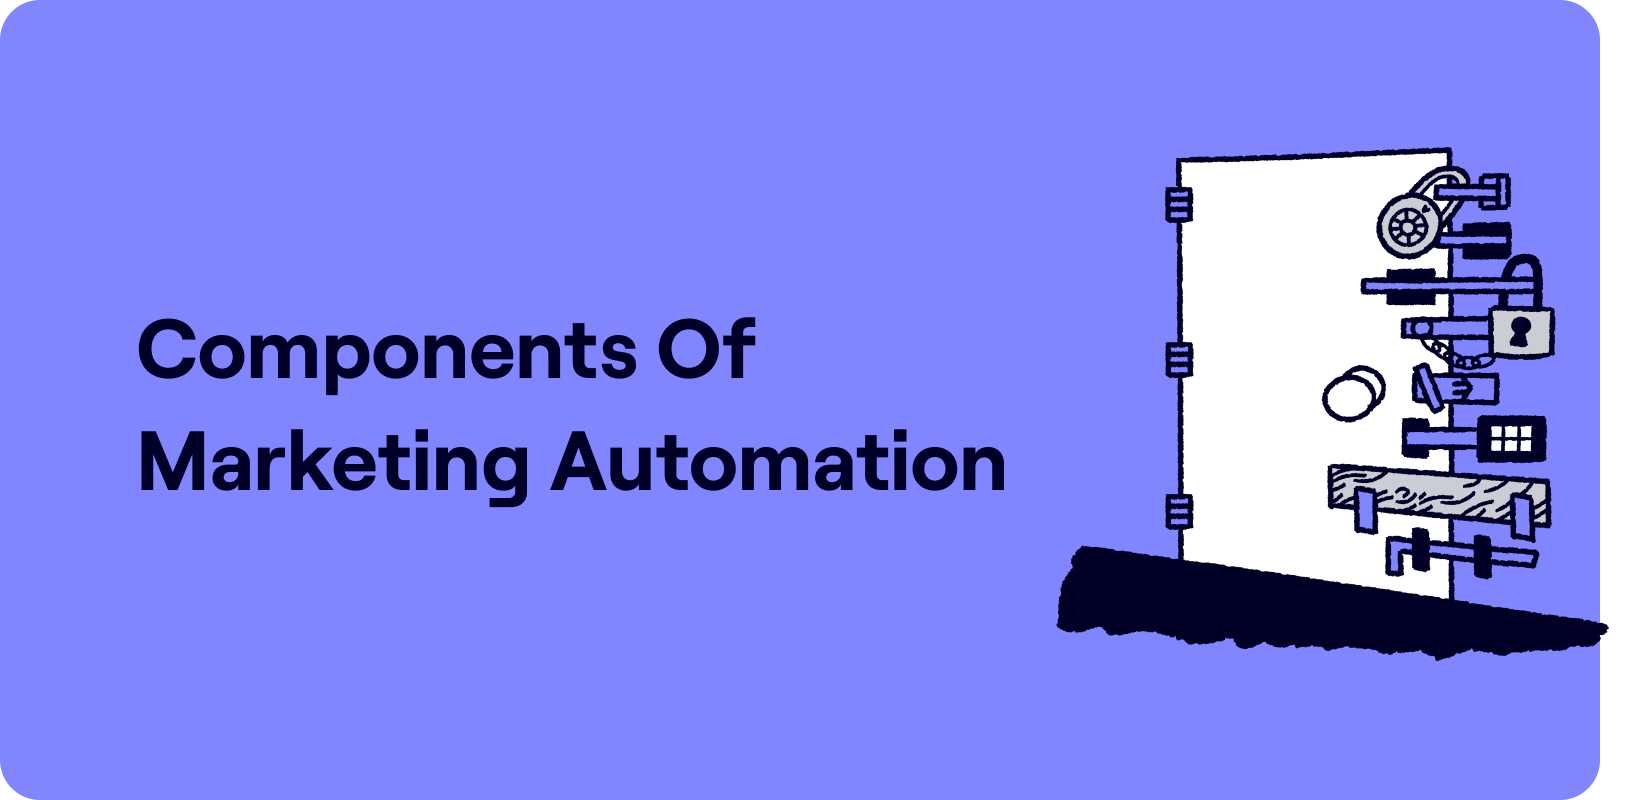 Components of marketing automation Illustration